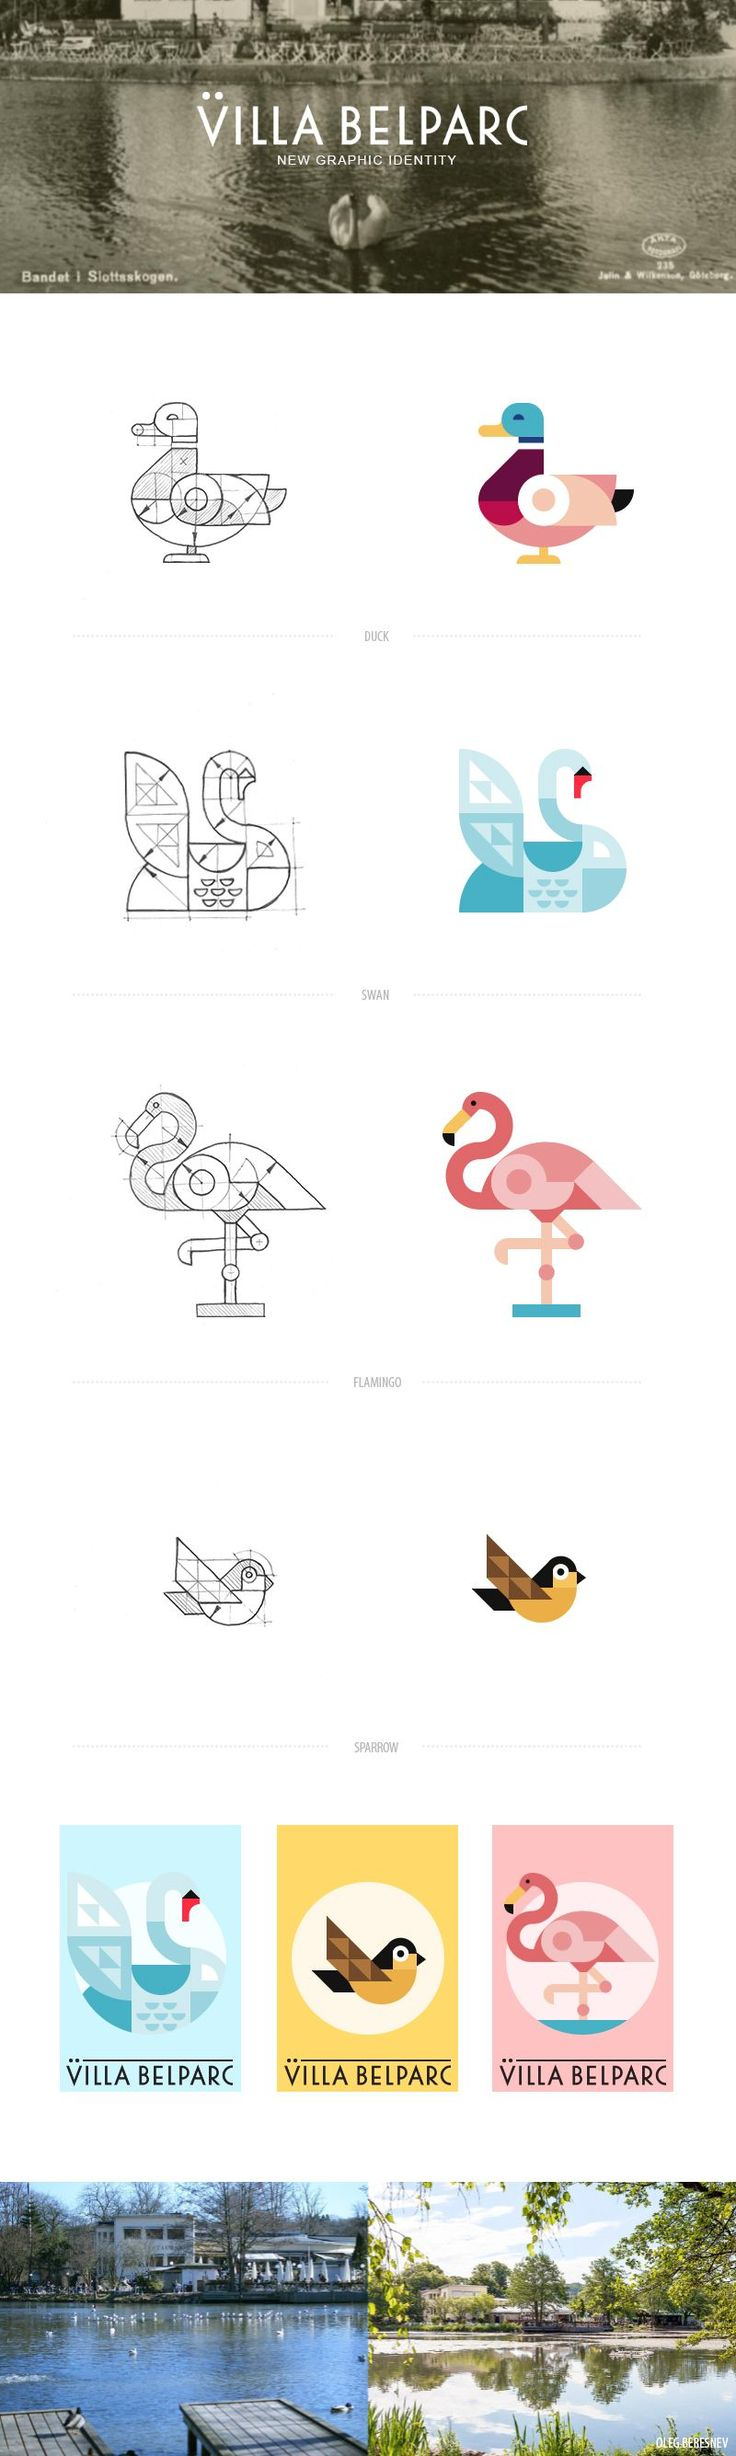 Dribbble - birds_800_2670px.jpg by Beresnev